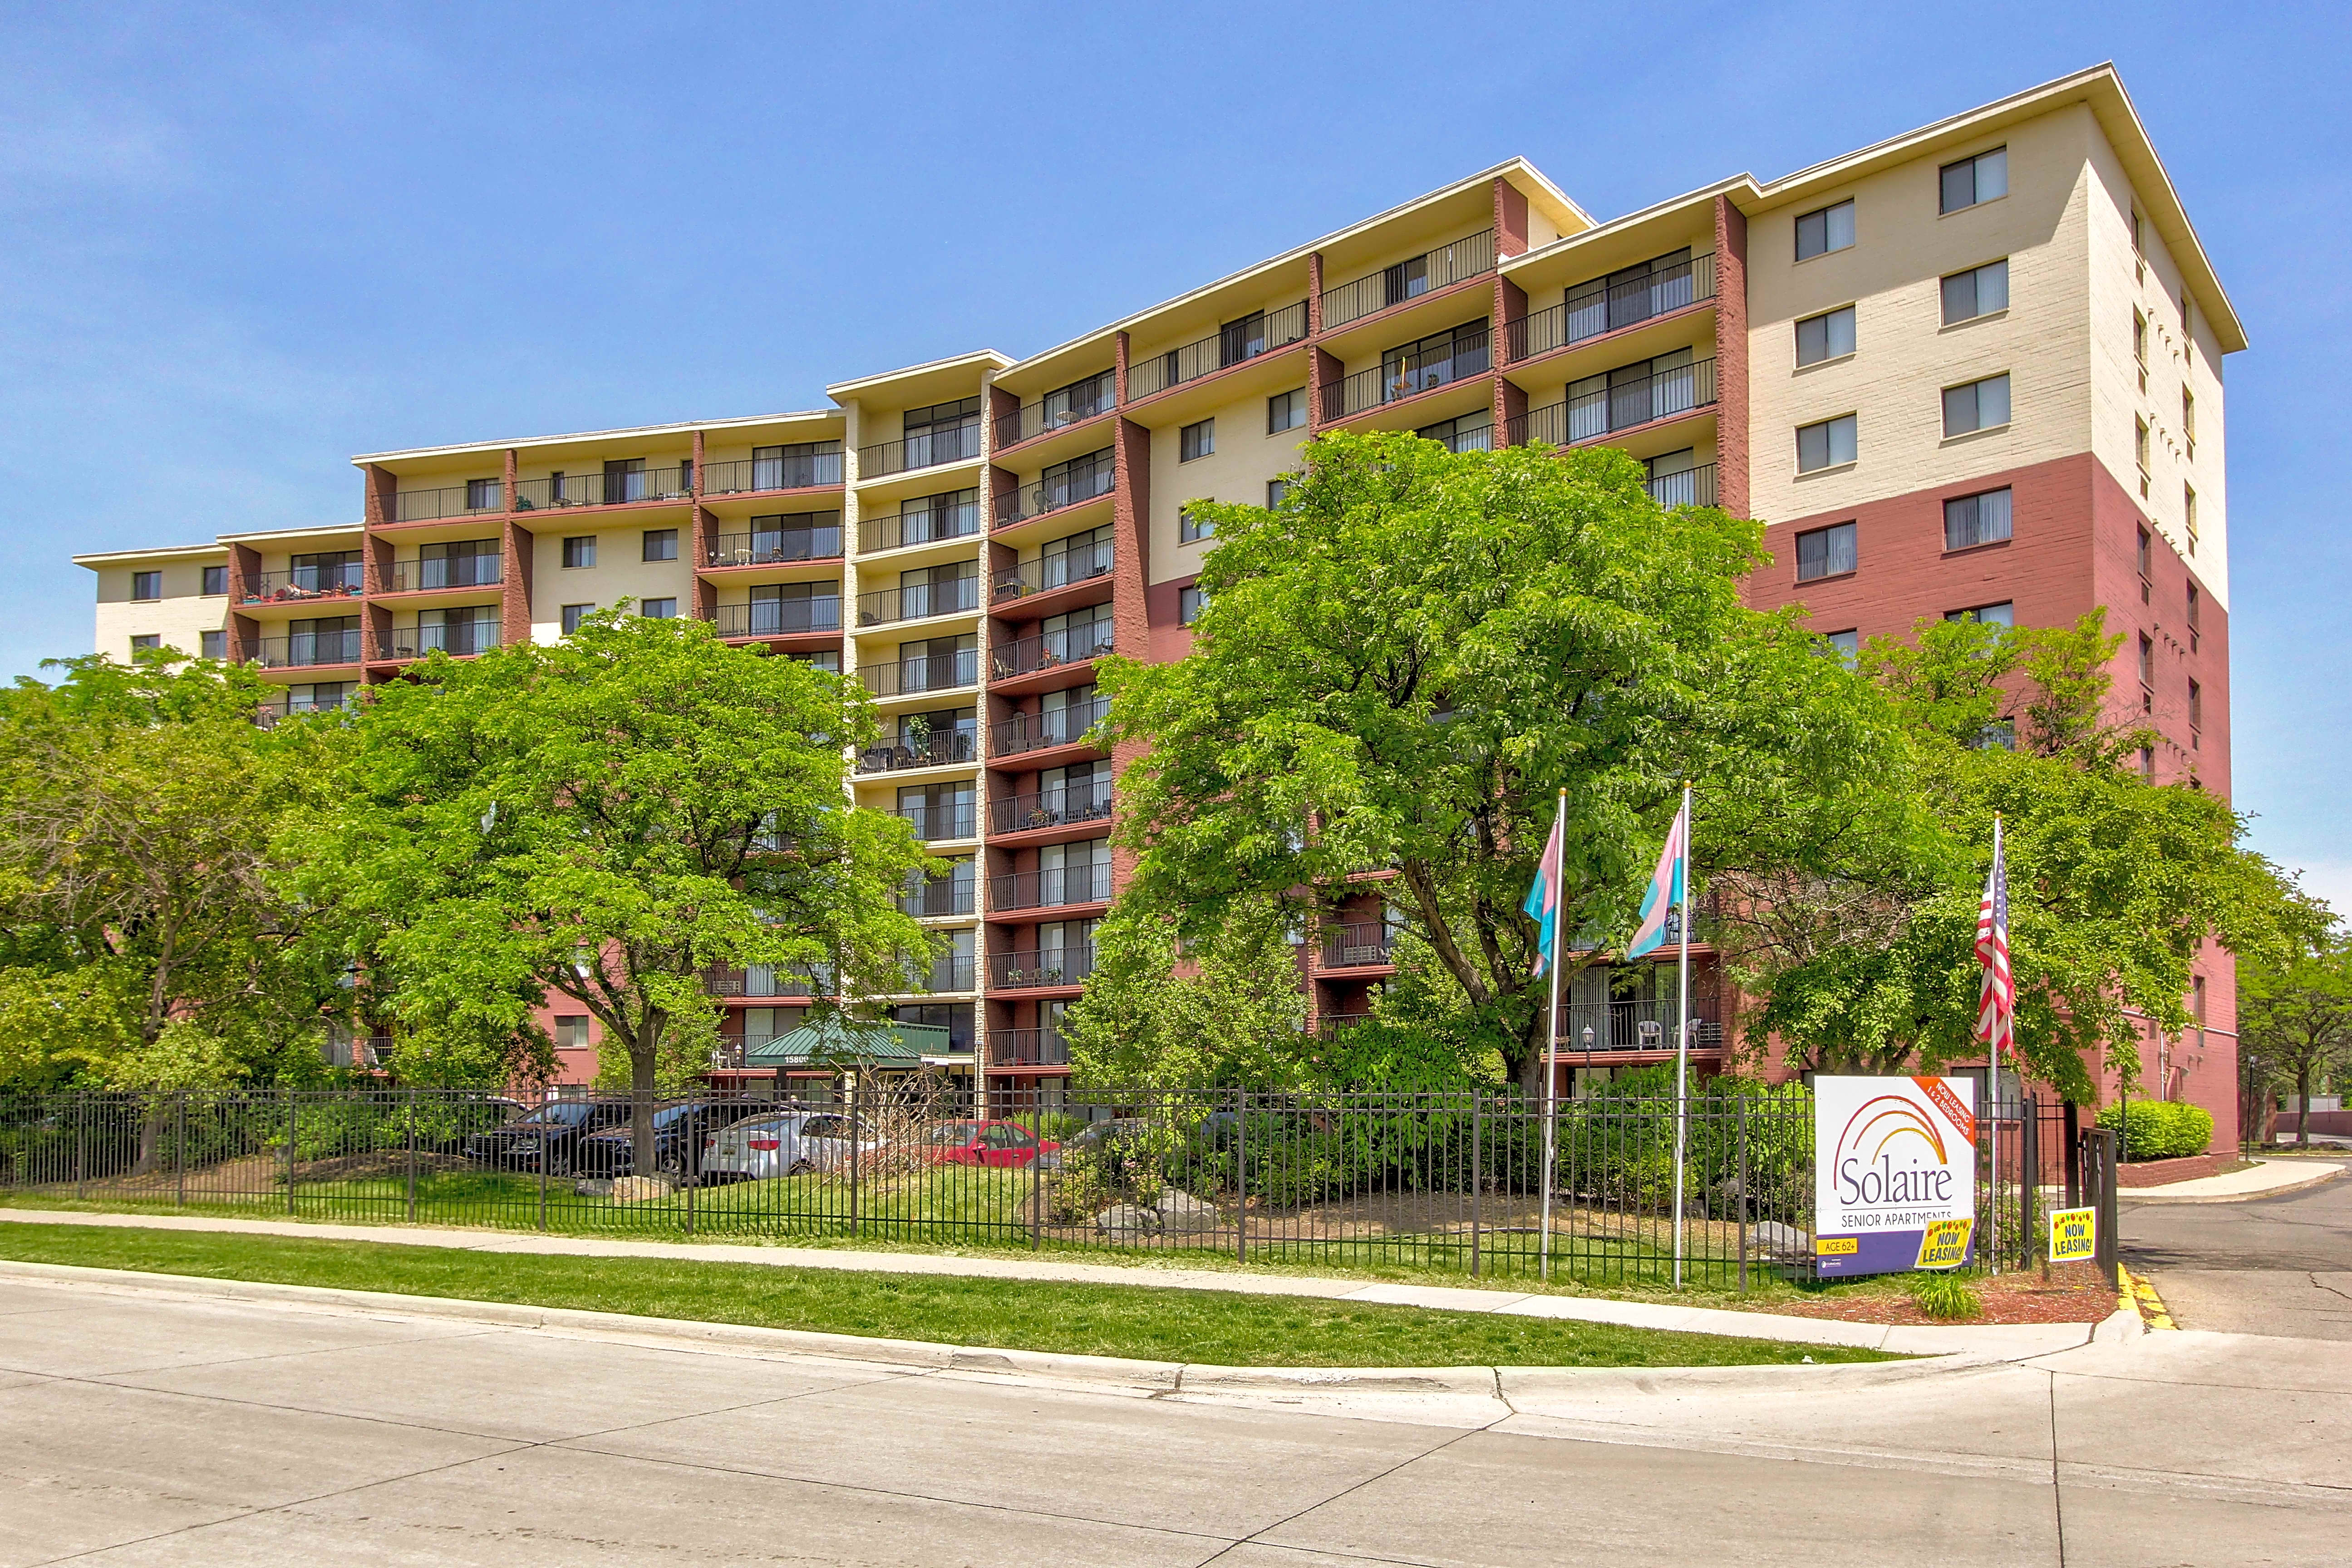 Apartments Near Lawrence Tech Solaire Senior Community 62+ for Lawrence Technological University Students in Southfield, MI